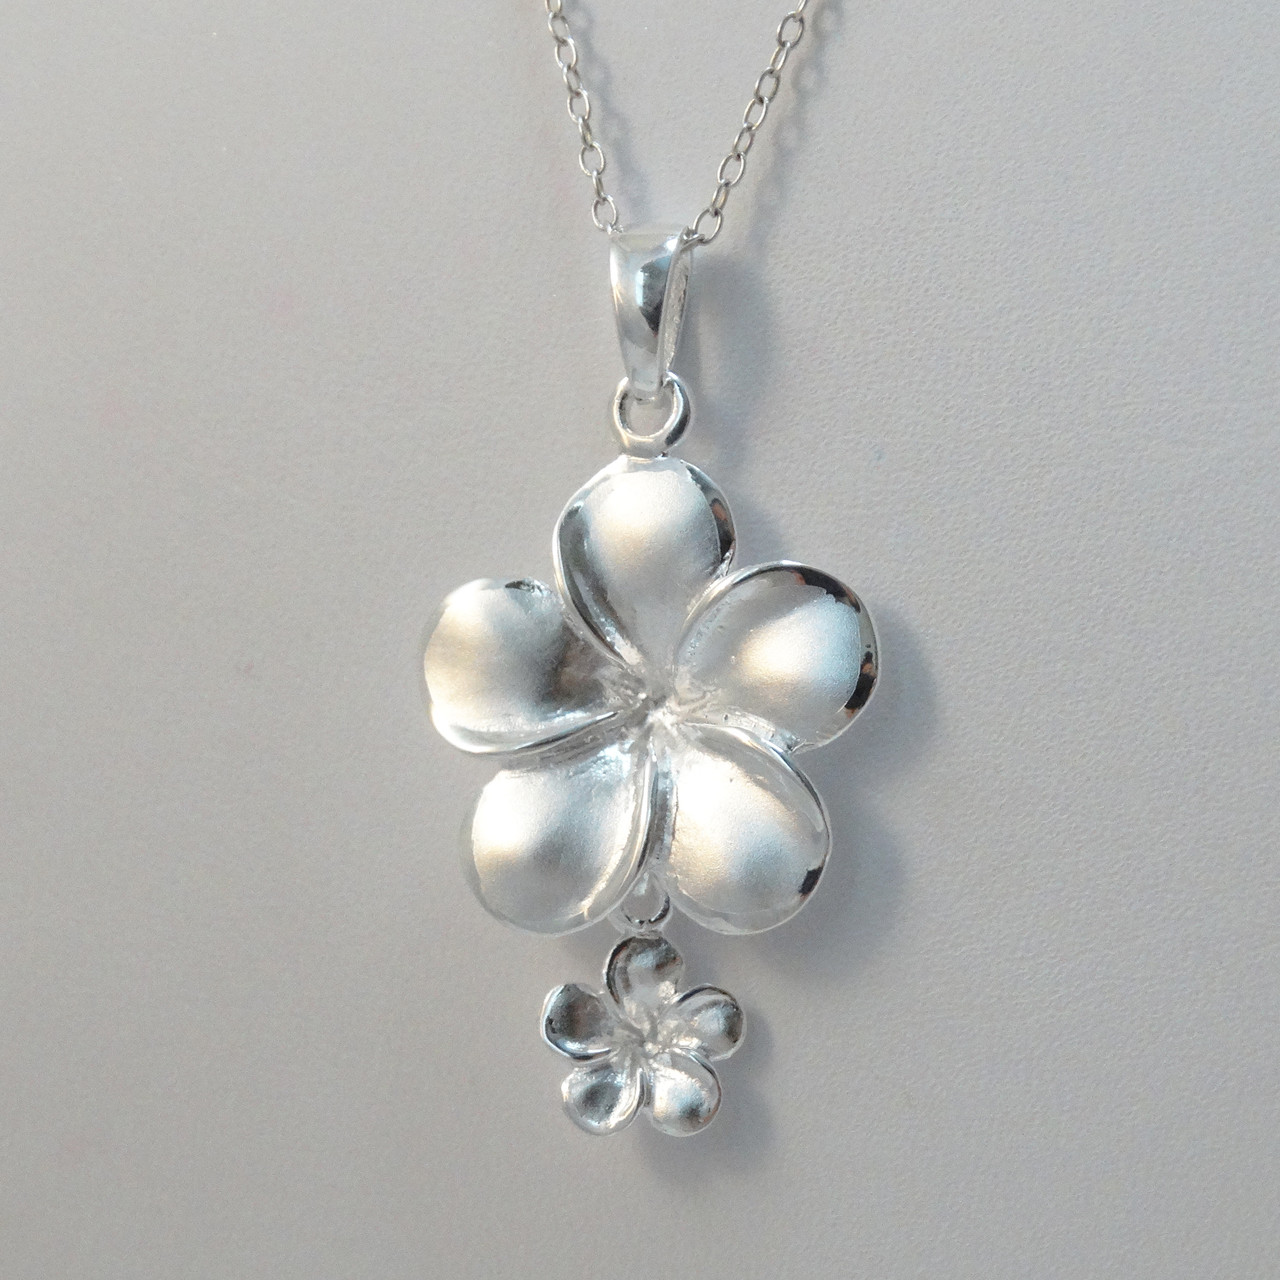 Sterling Silver Plumeria Necklace Fashionjunkie4life